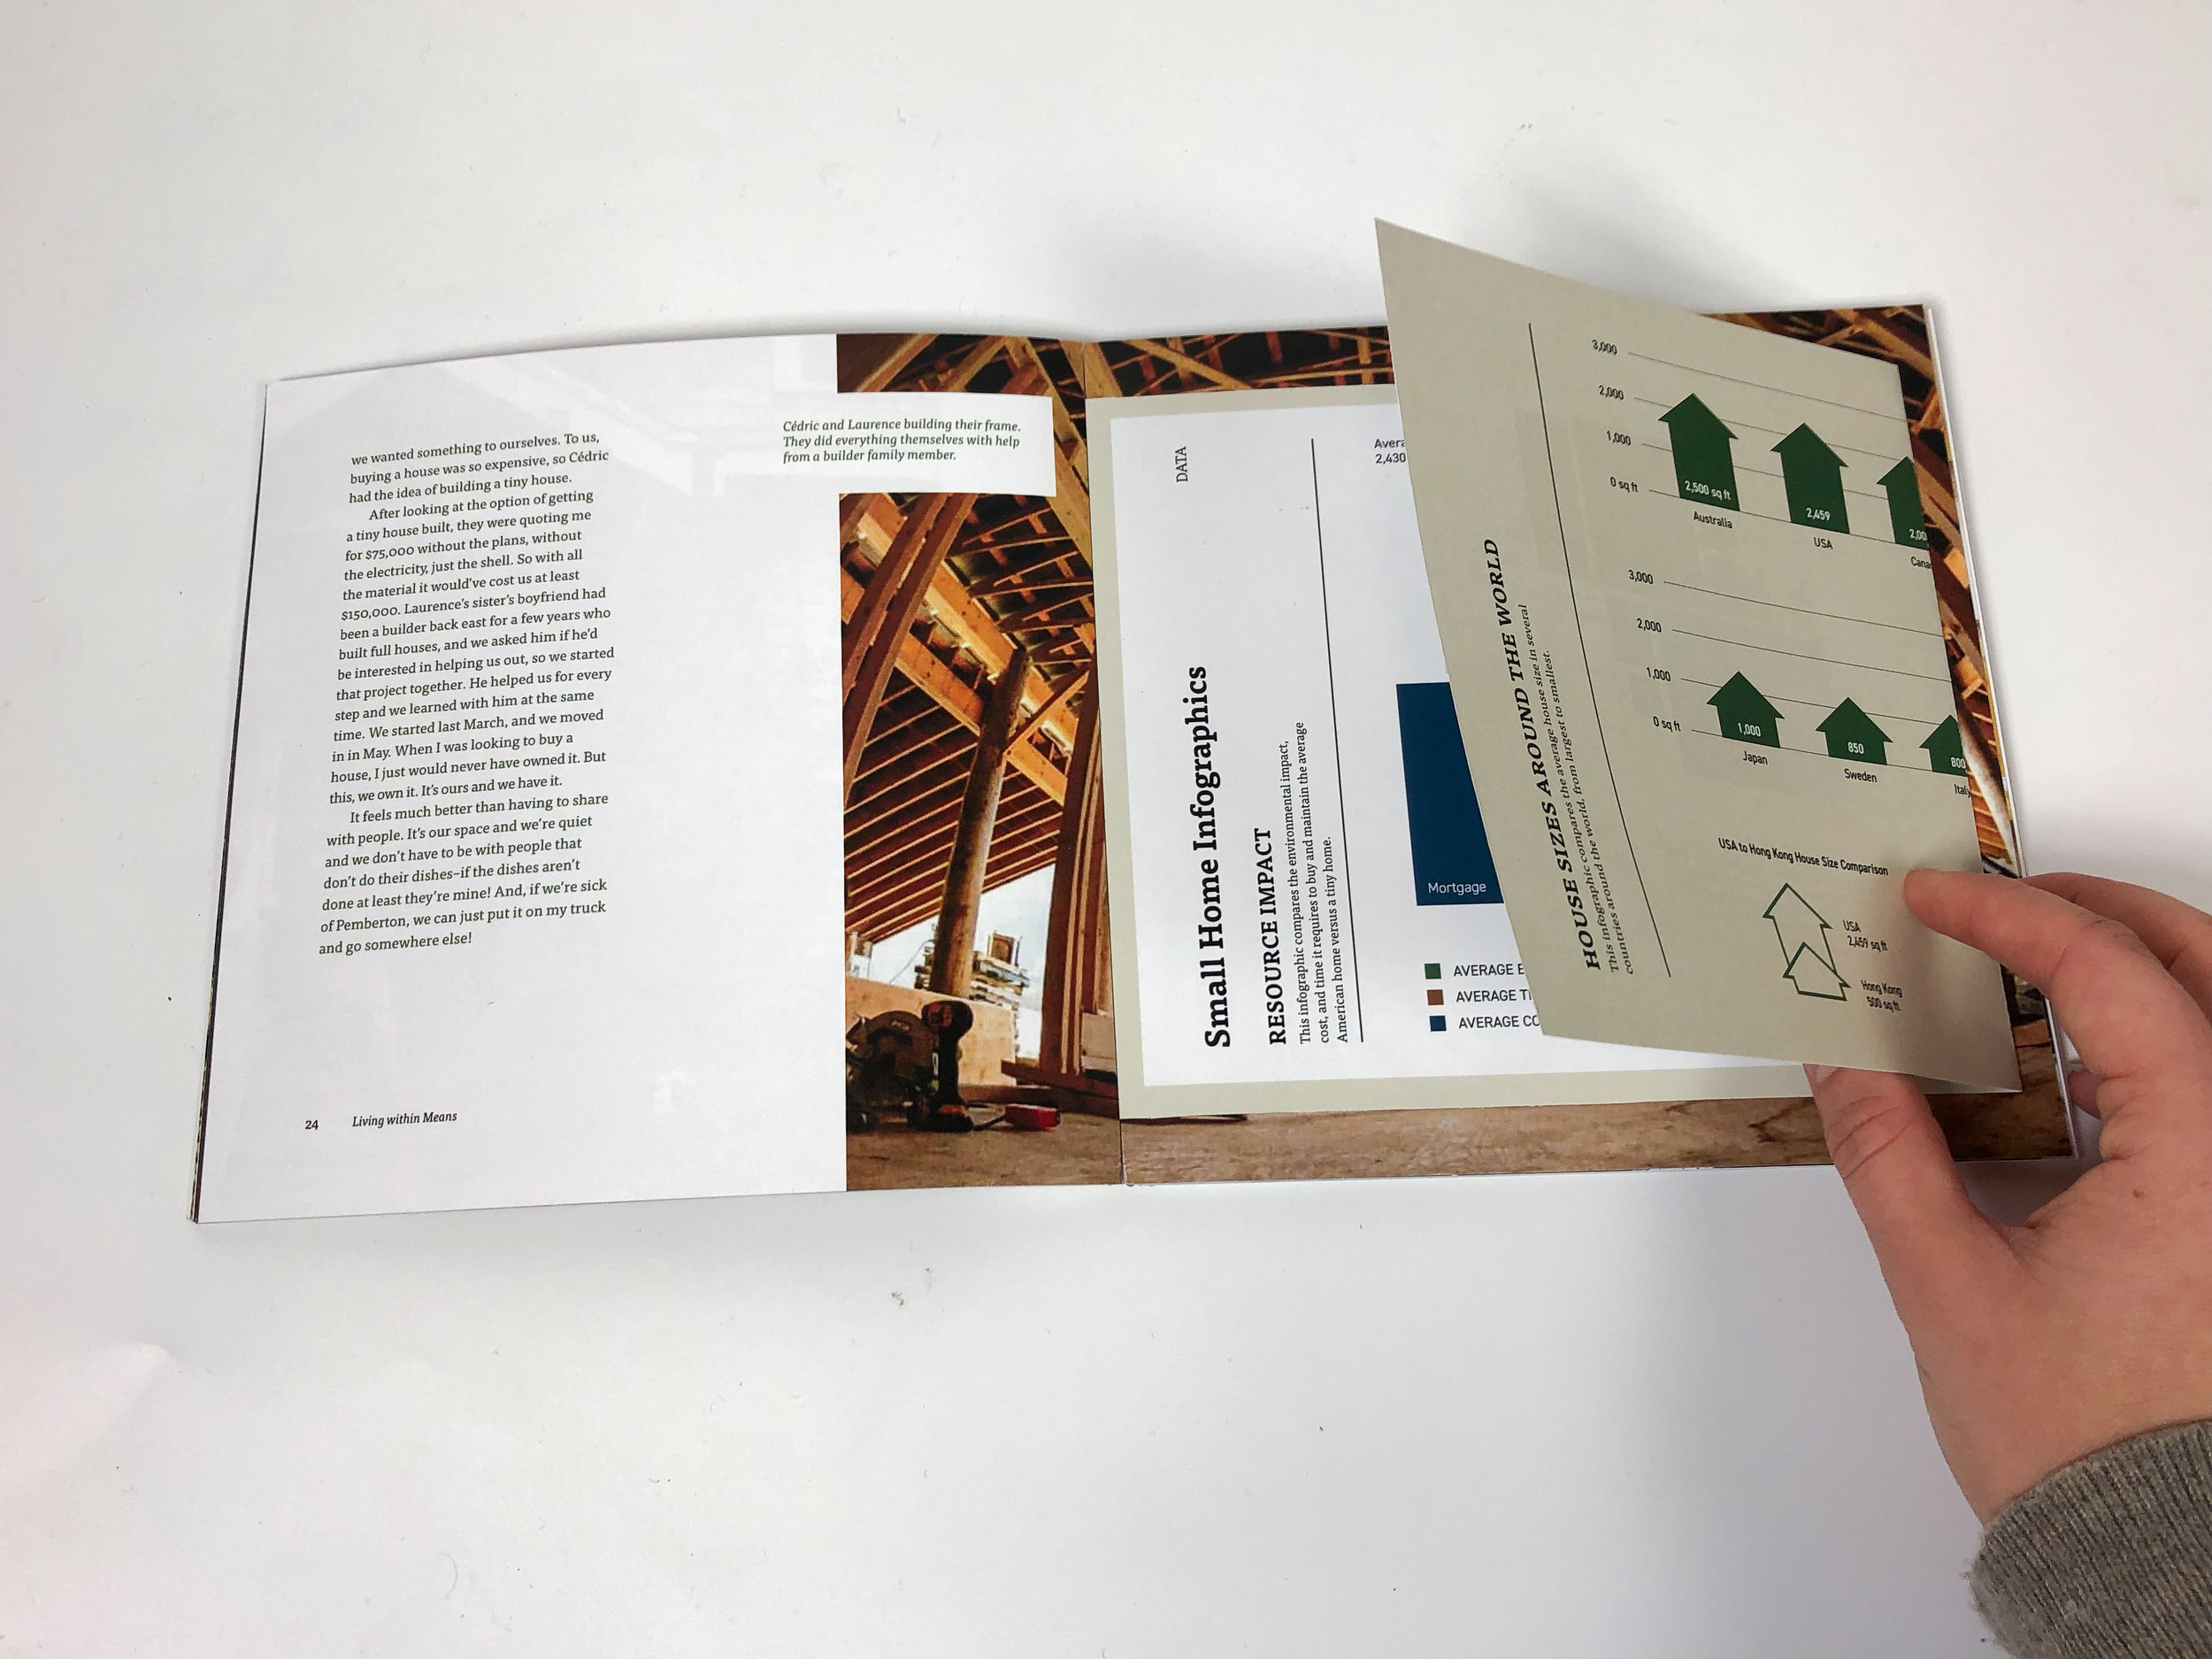 Infographics in the form of foldouts are also scattered throughout the book, with information ranging from infographics on environmental impact to guide books for small living.